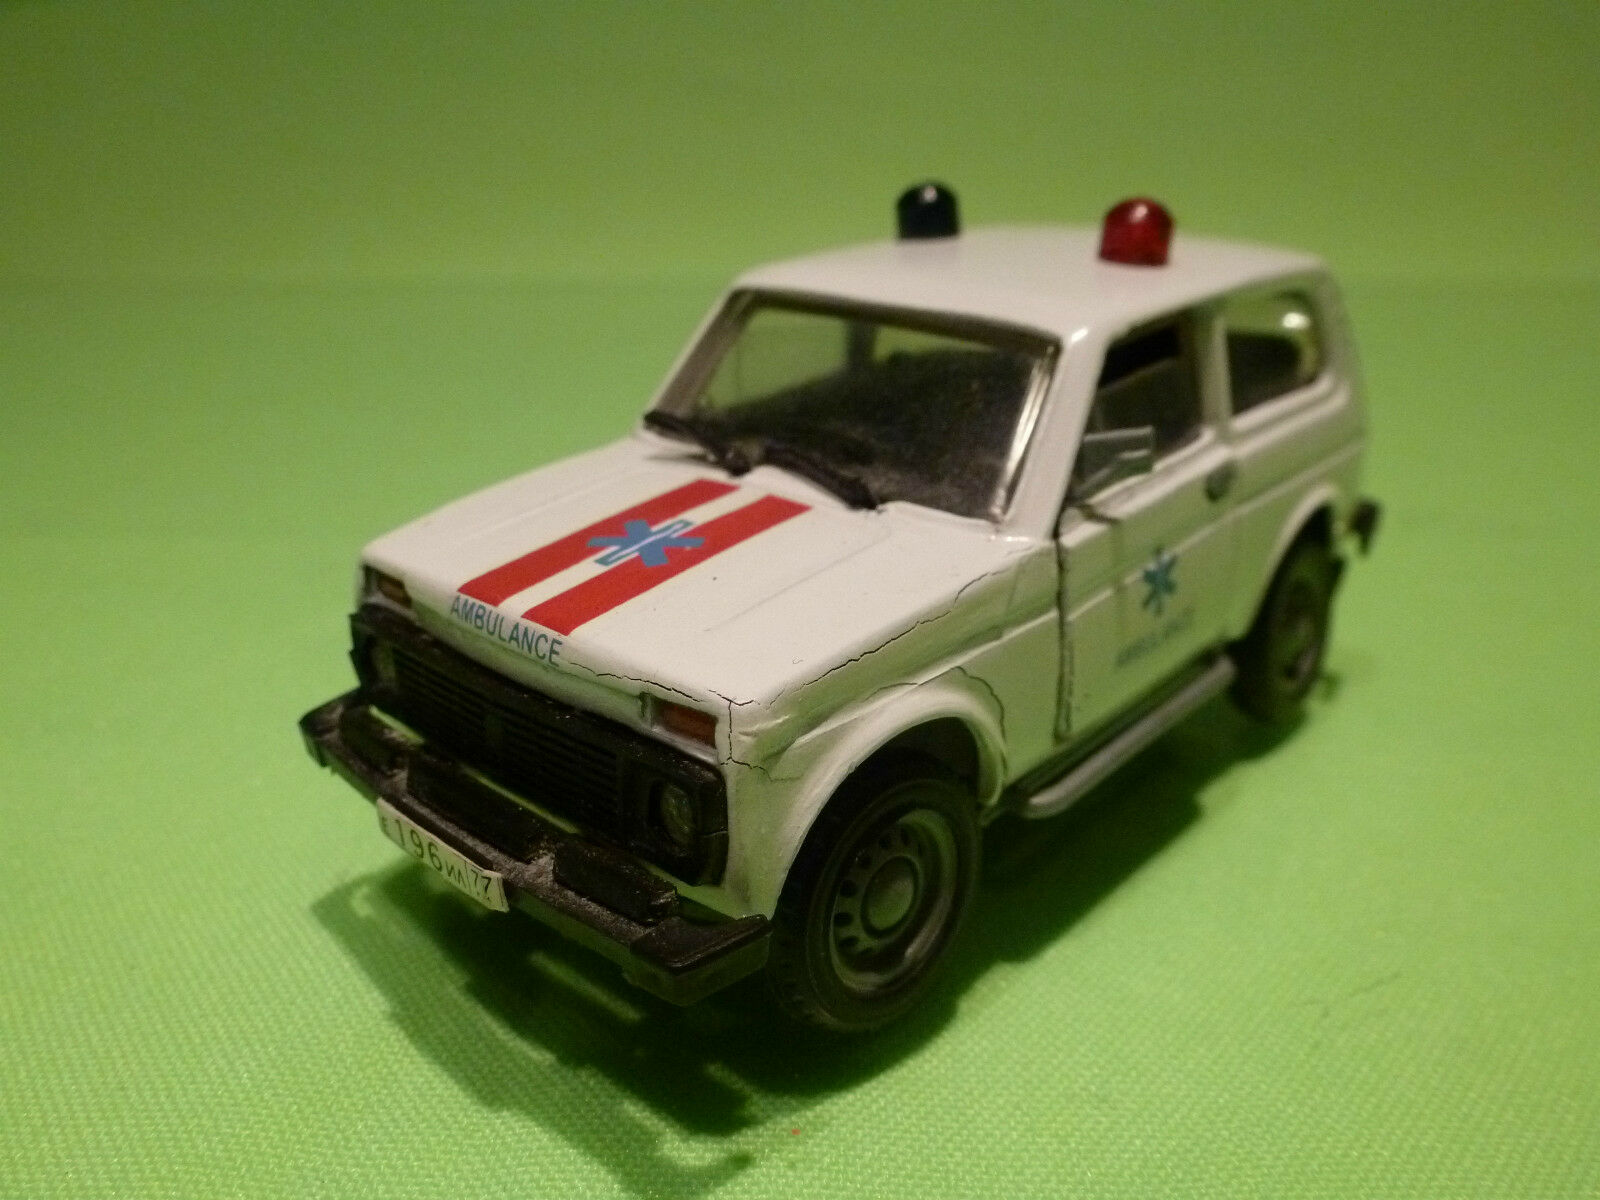 MADE IN USSR CCCP 21213 LADA NIVA - AMBULANCE - 1 43 - EXTREMELY RARE -FAIR COND